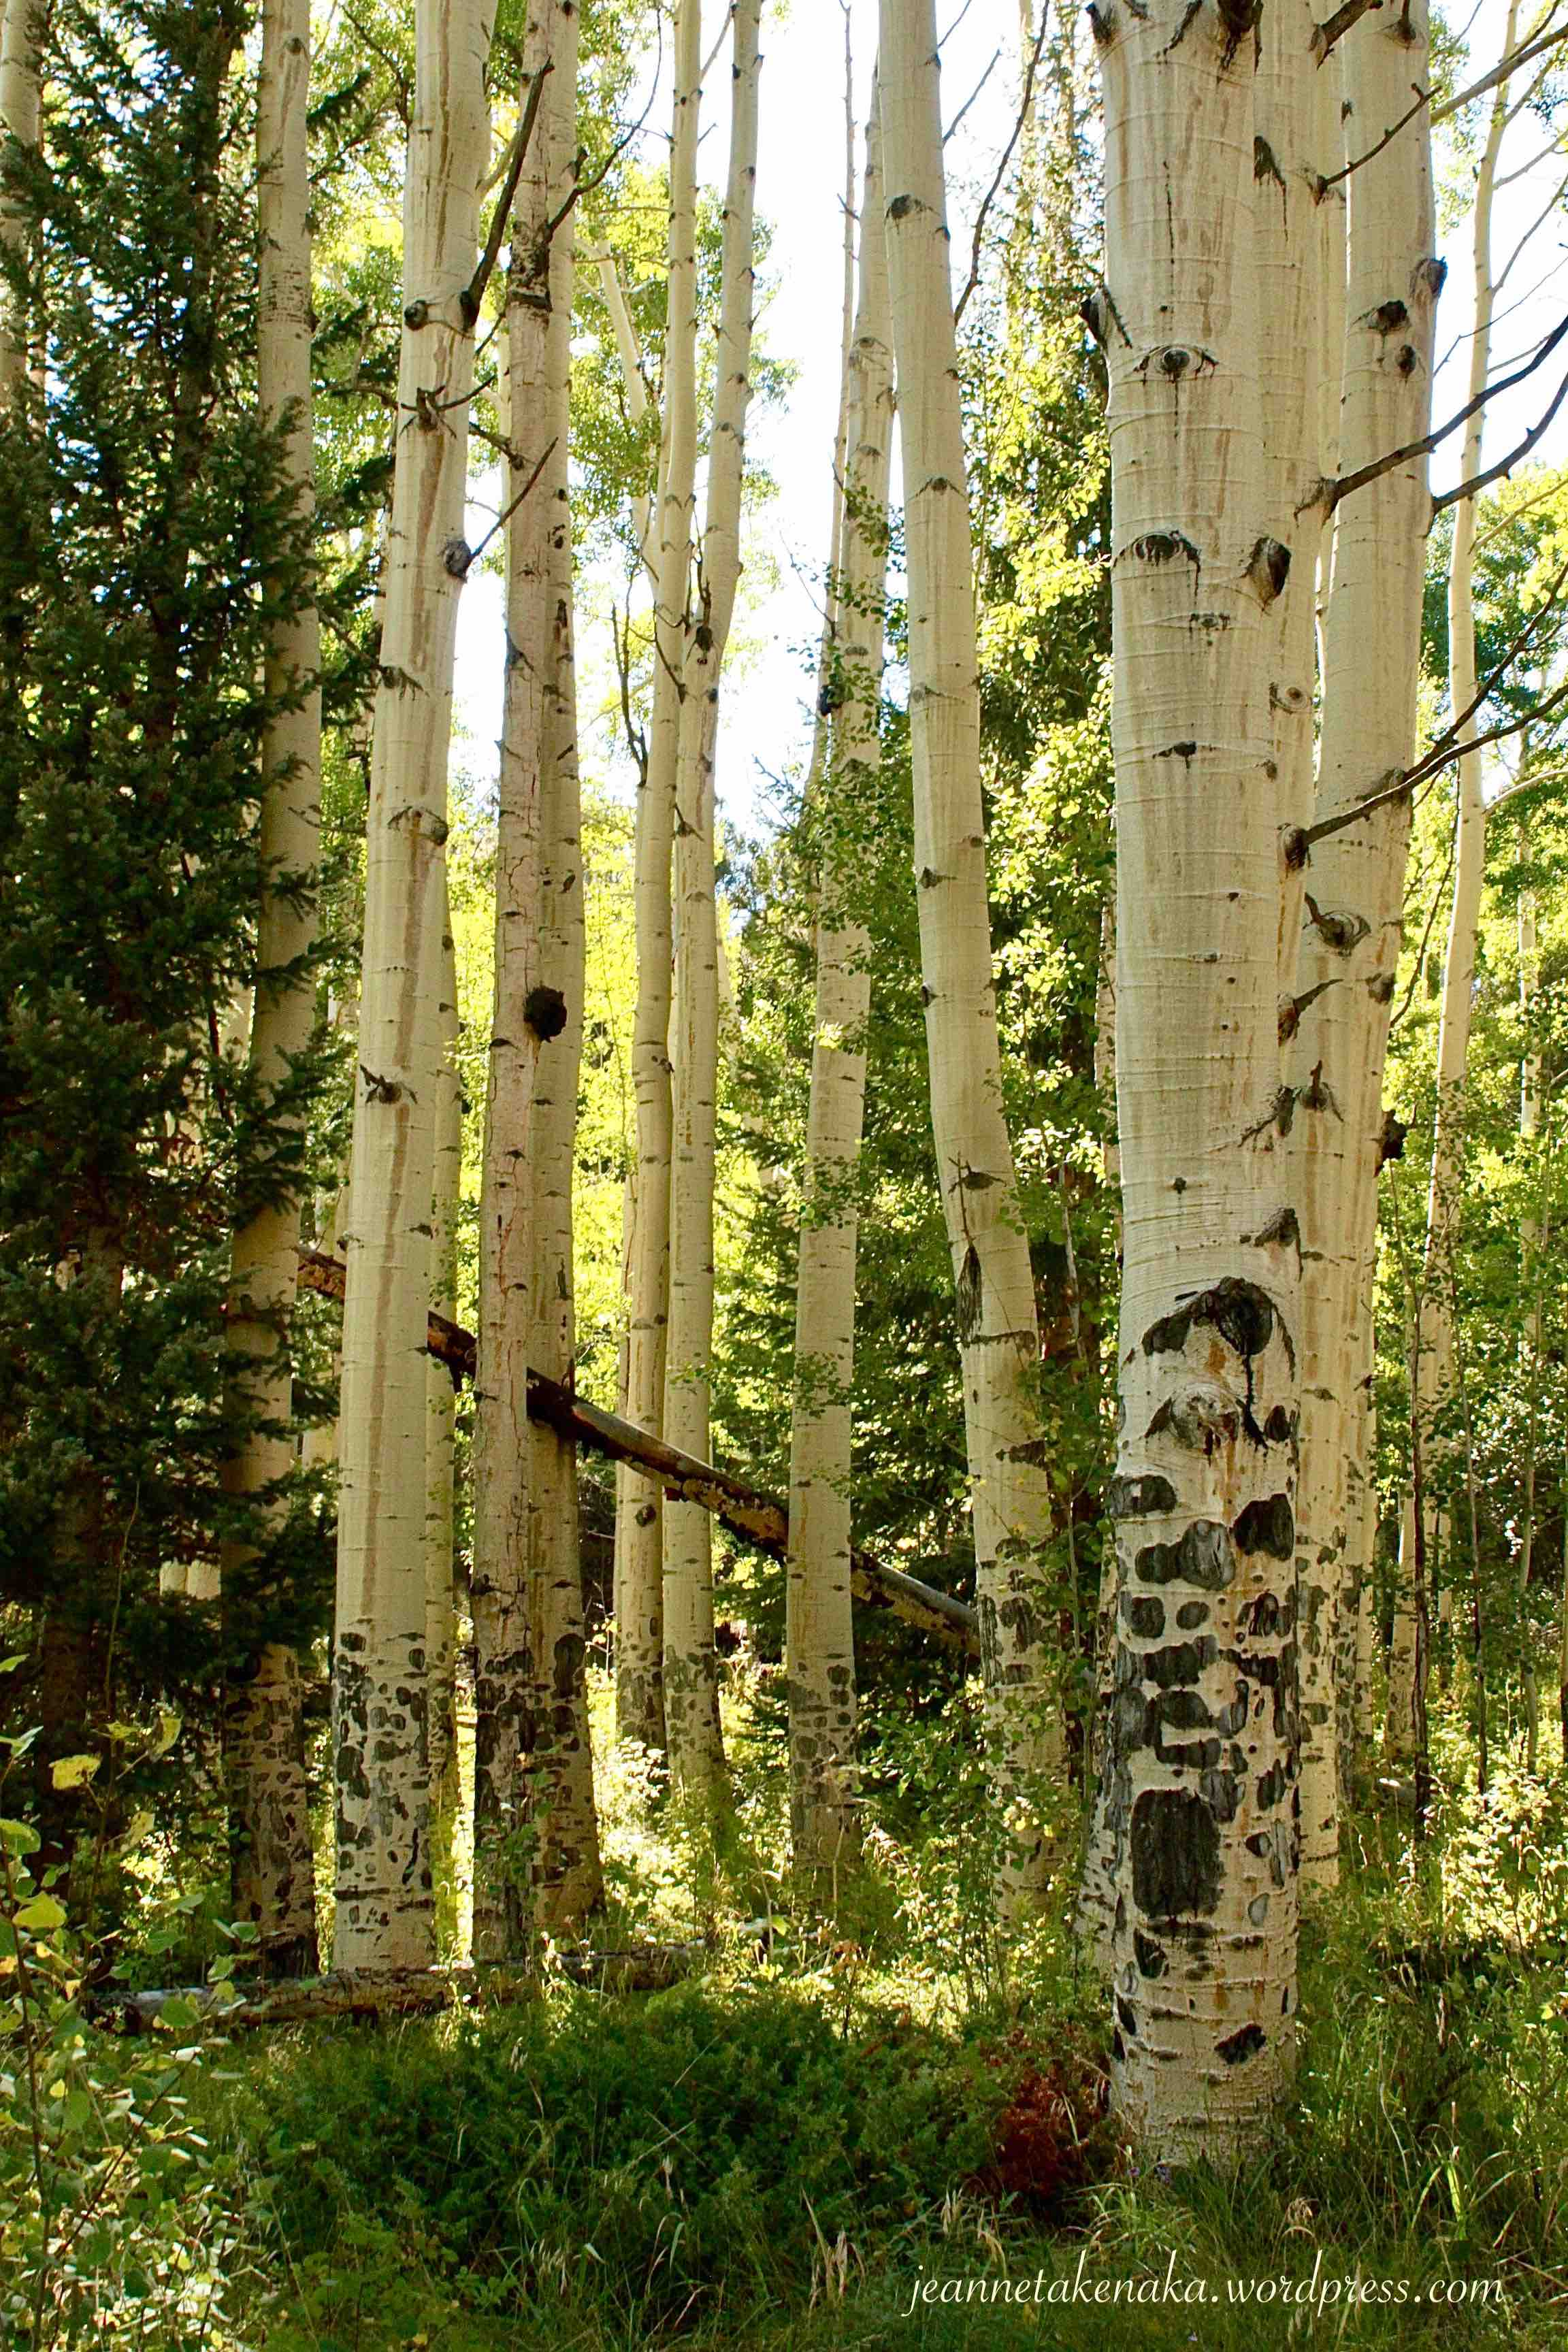 A grove of aspen trees in a forest